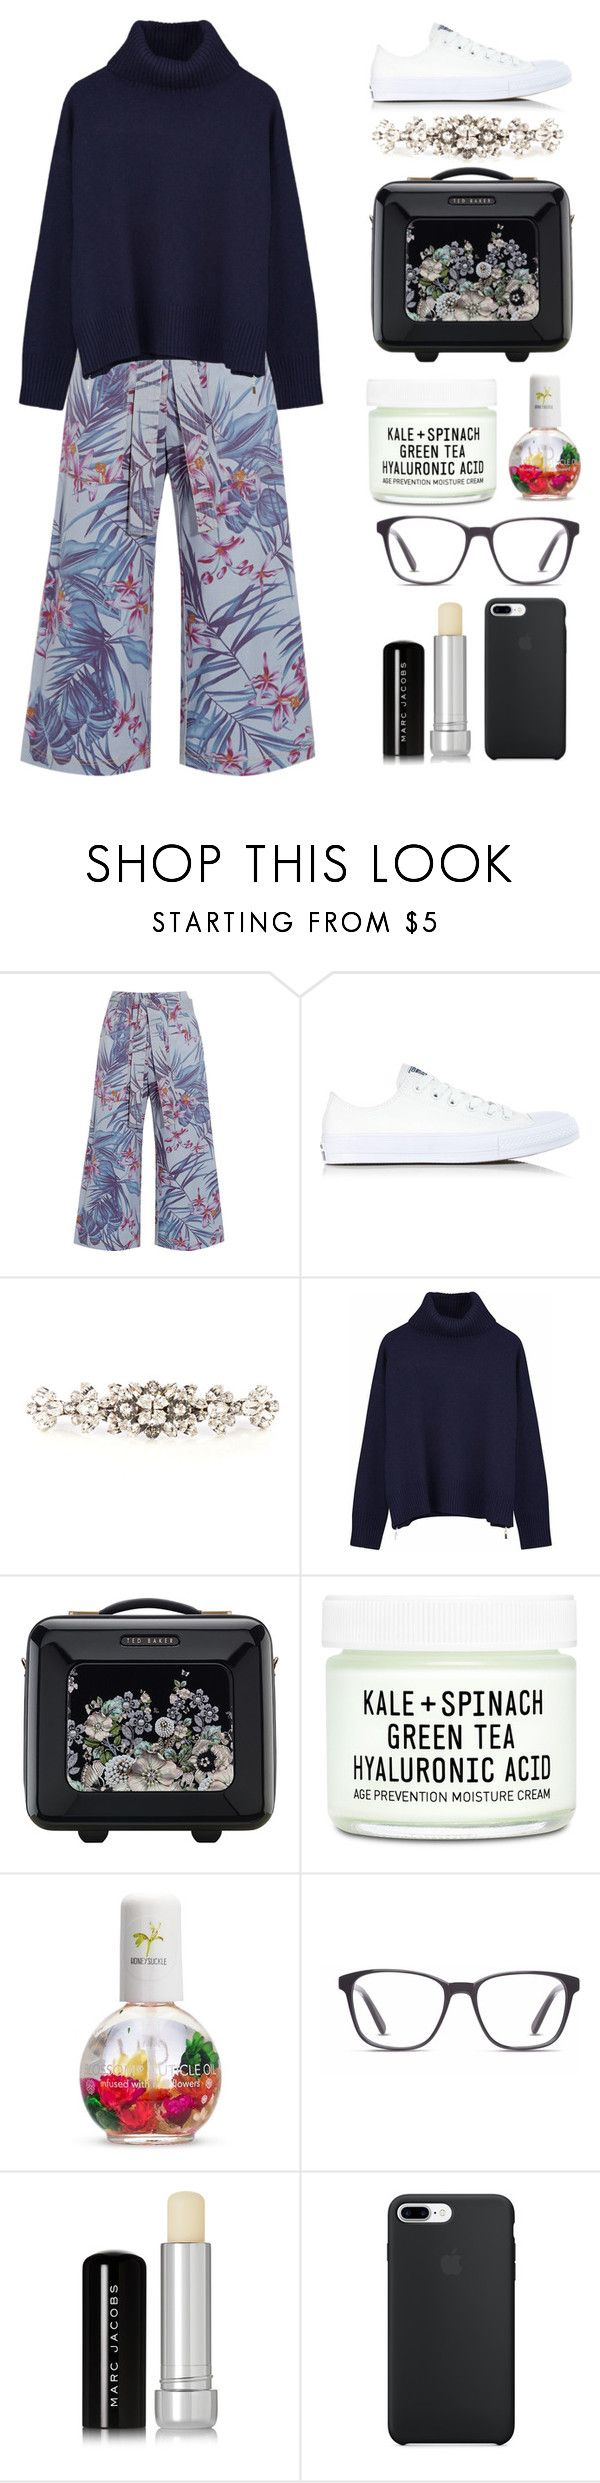 """""""5.762"""" by katrinattack ❤ liked on Polyvore featuring SUNO New York, Converse, Dolce&Gabbana, Ille De Cocos, Ted Baker, Youth To The People, Forever 21, Finlay & Co. and Marc Jacobs"""